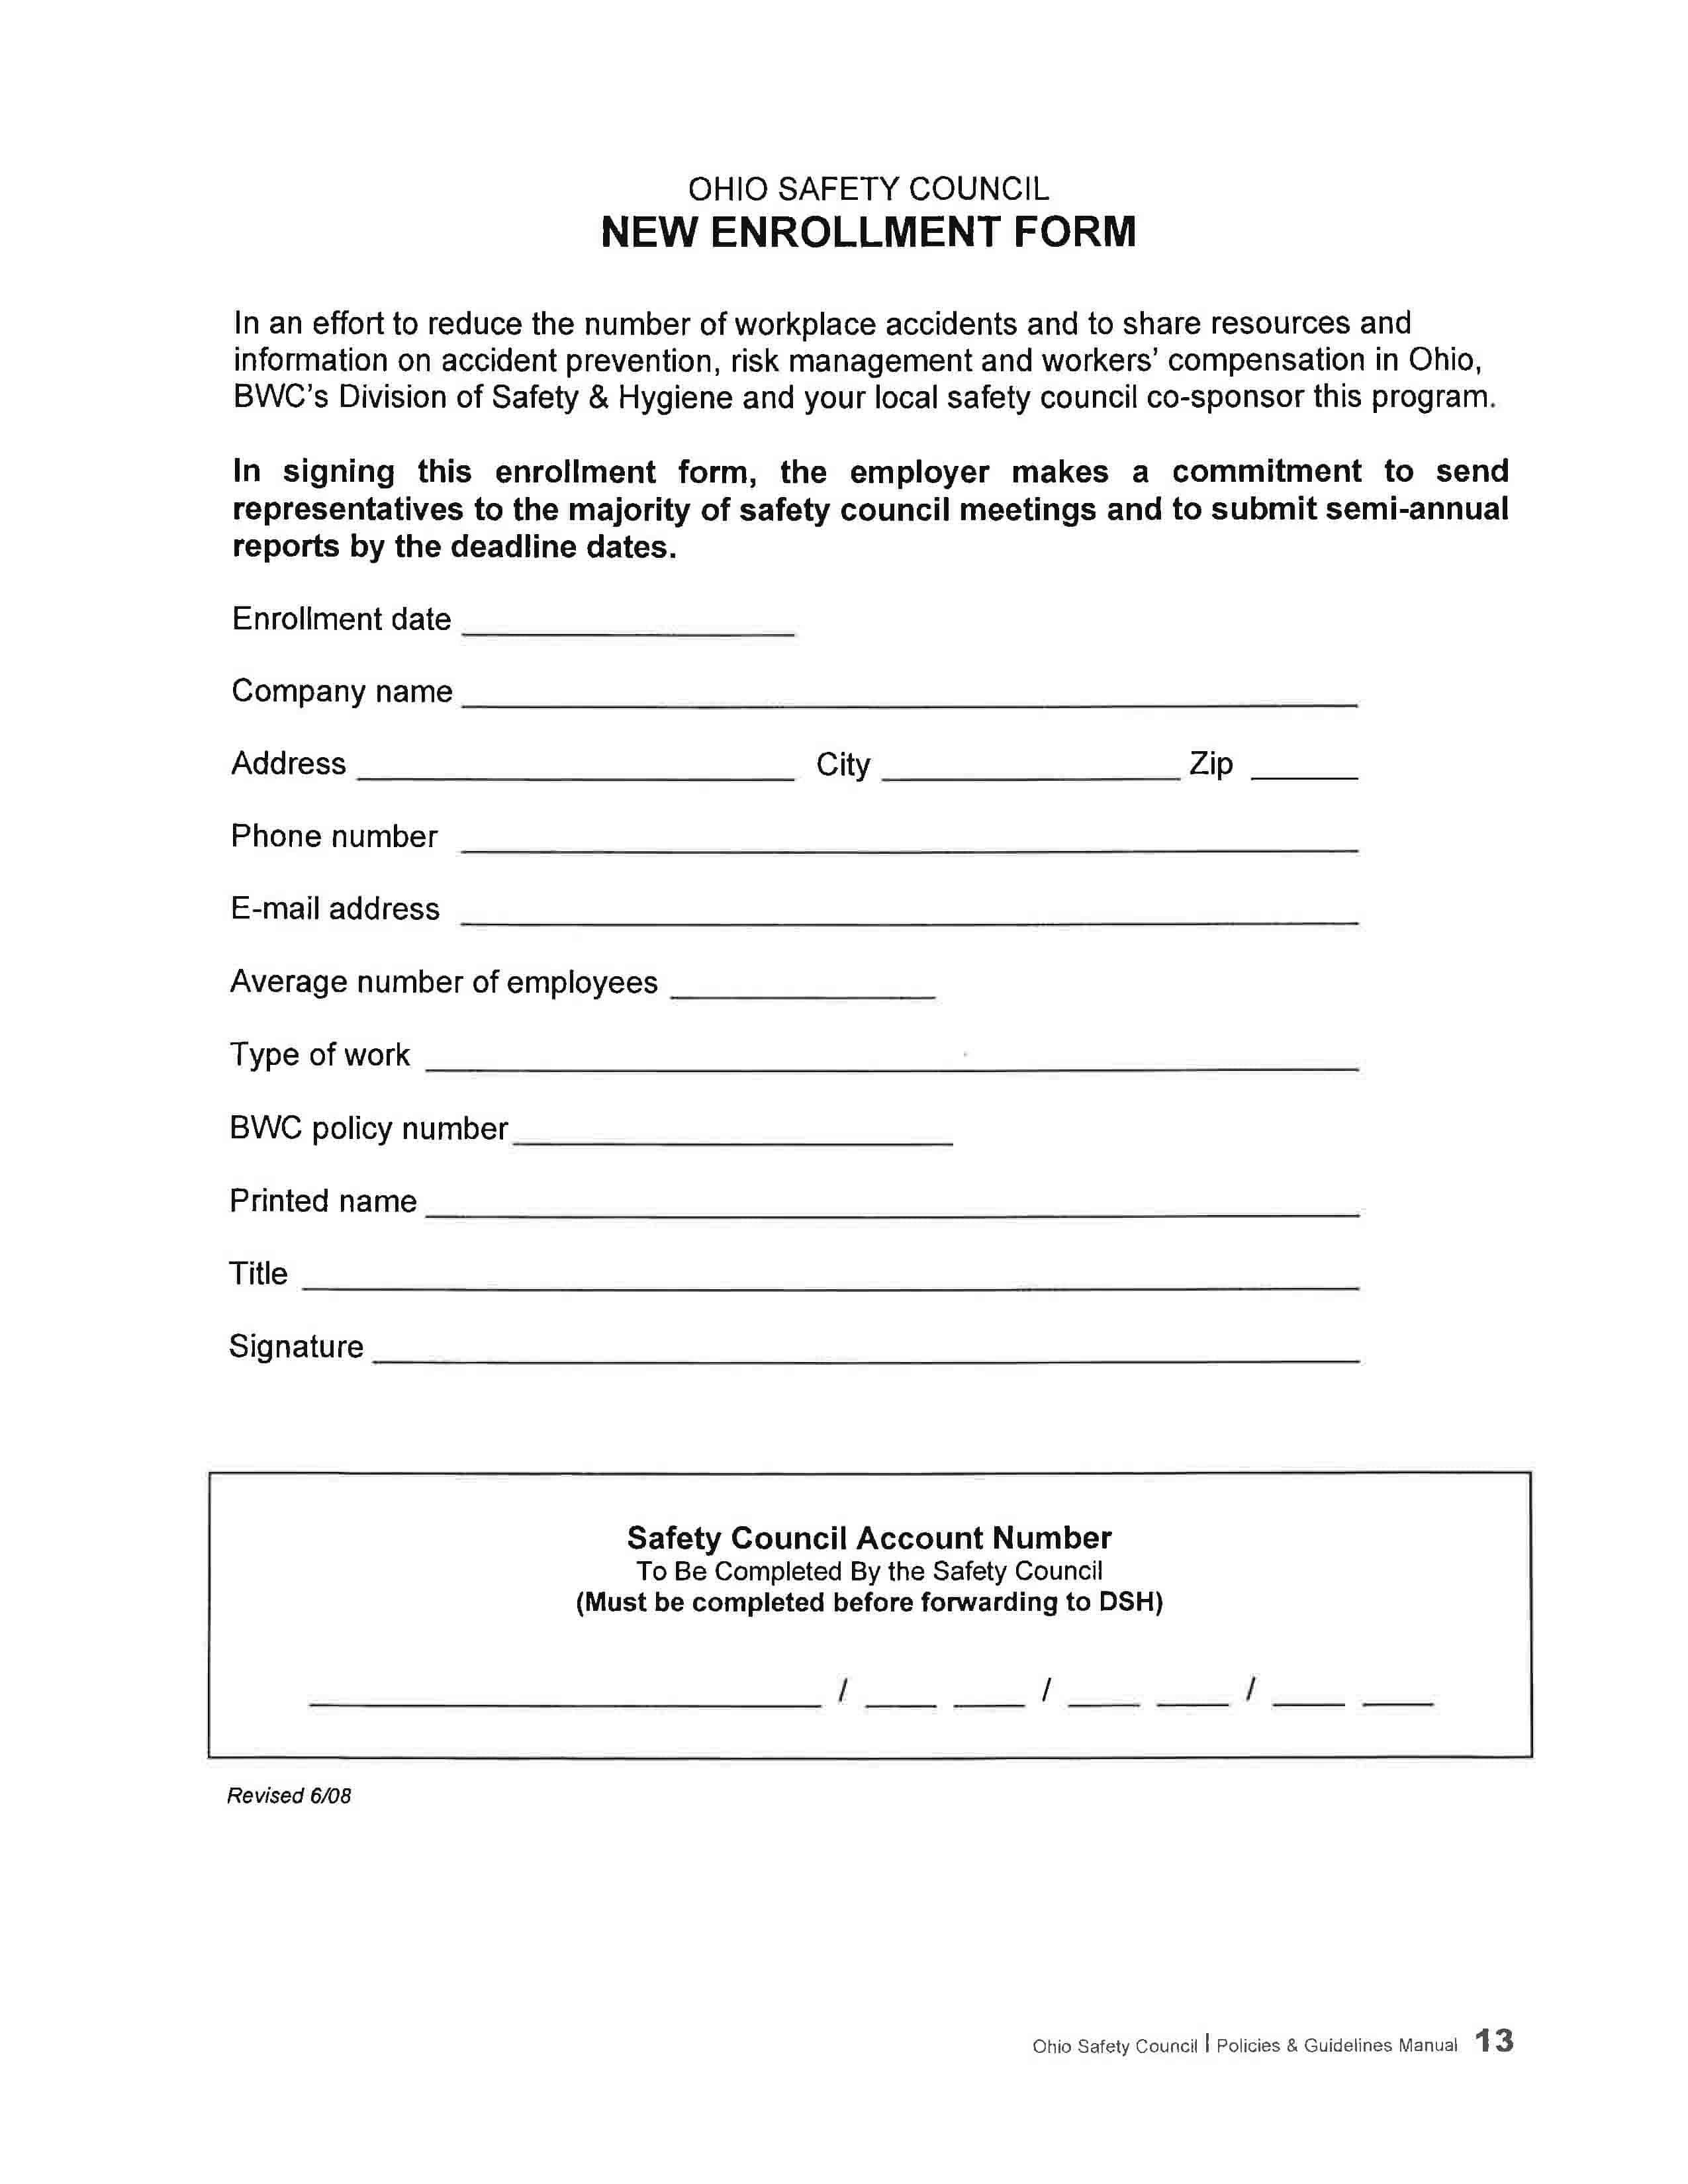 Safety Enrollment Form - Jefferson County Chamber of Commerce